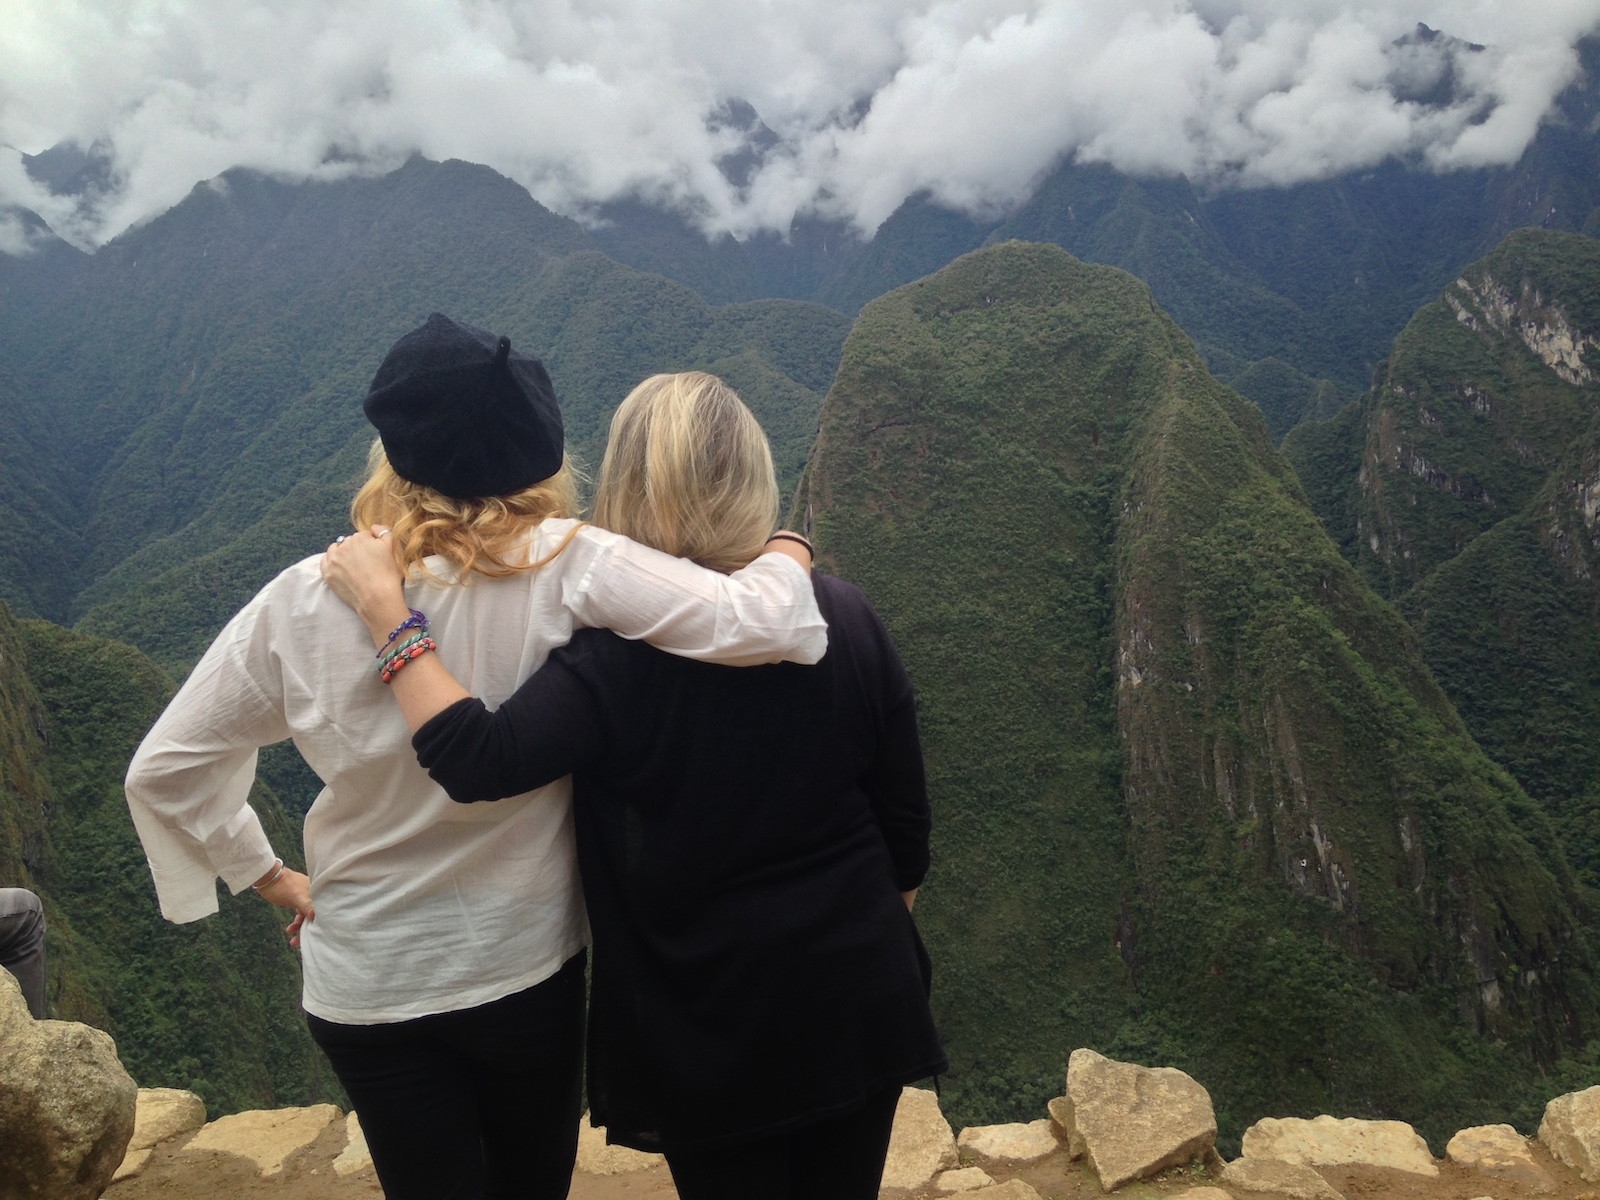 9 Tips for Your Trip to Machu Picchu